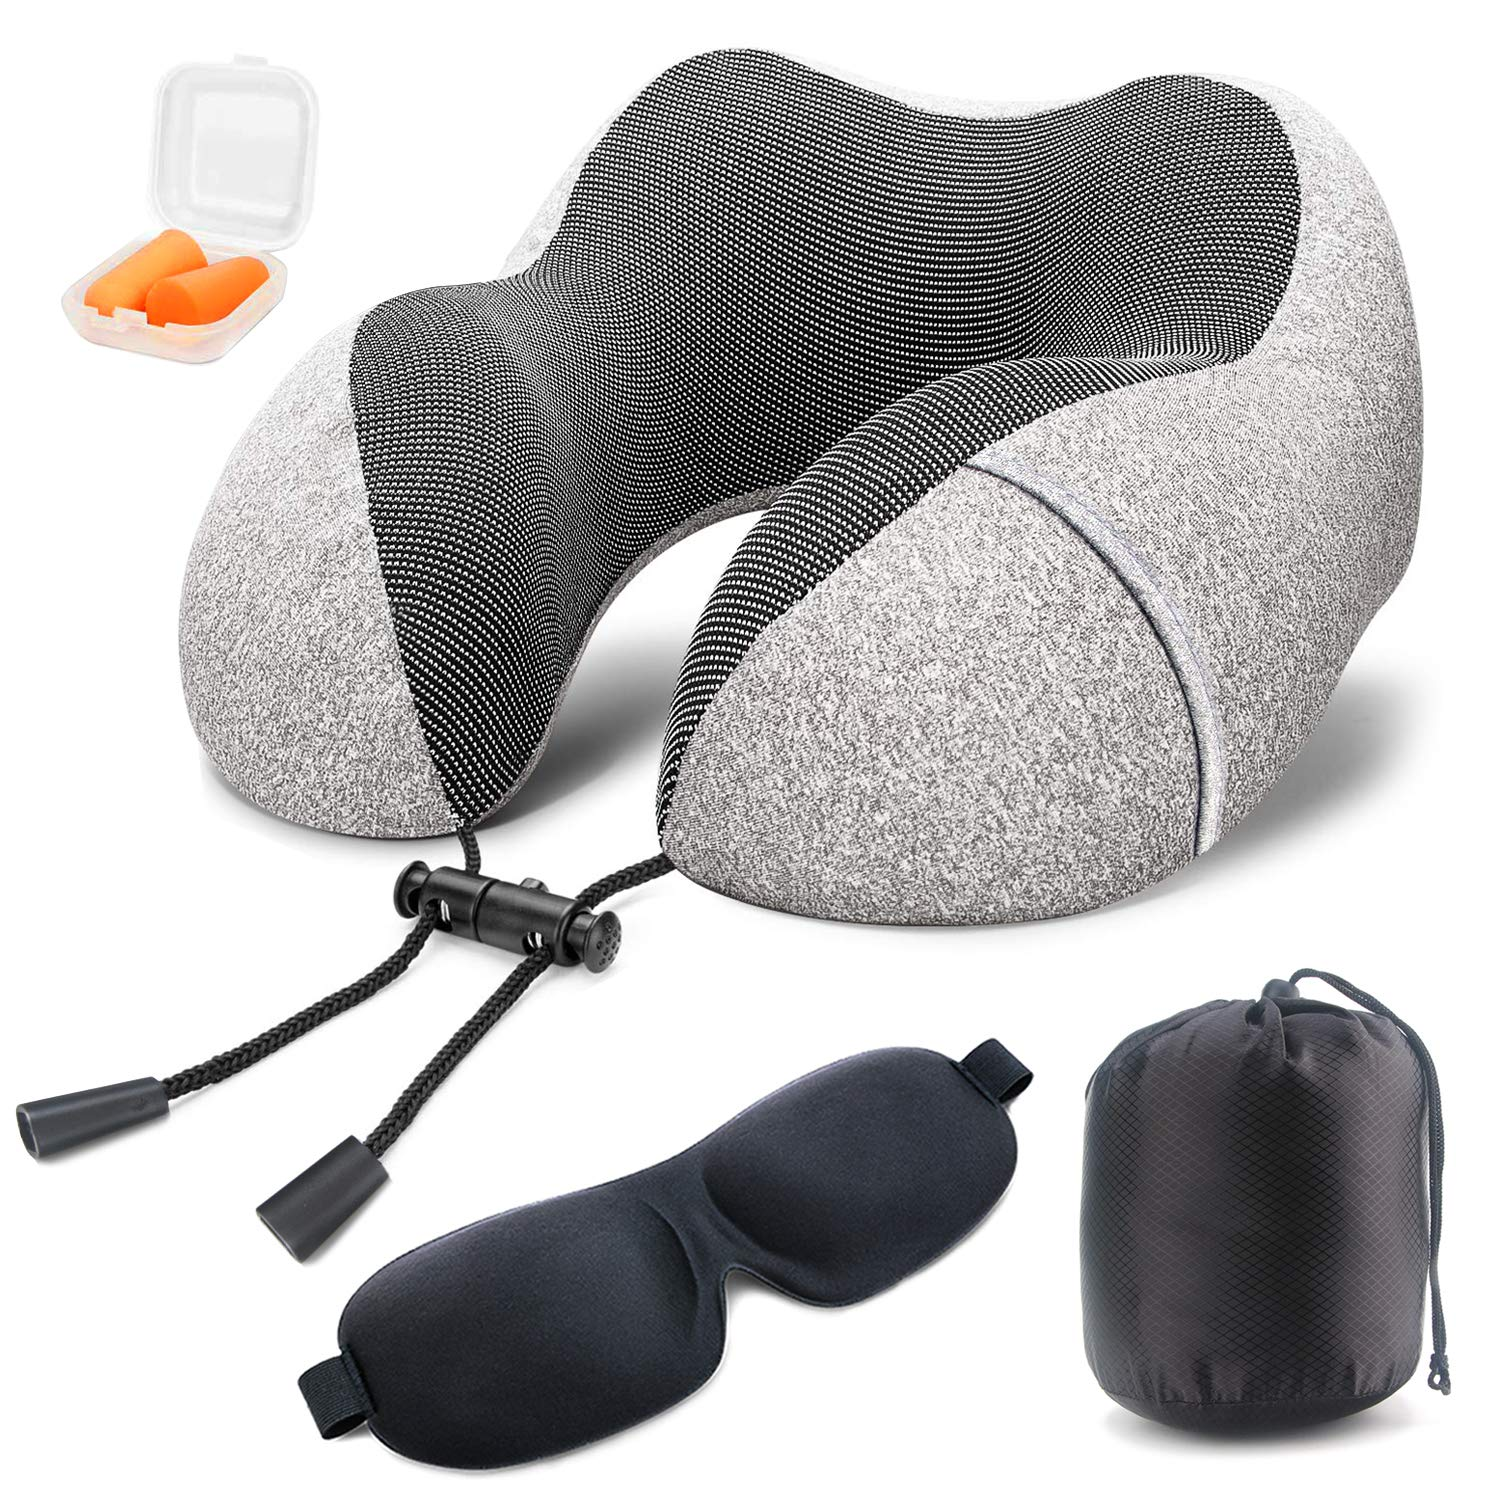 Soft Digits Memory Foam Travel Pillow, Neck Pillow Travel Kit with 3D Contoured Eye Masks, Earplugs and Storage Bag…